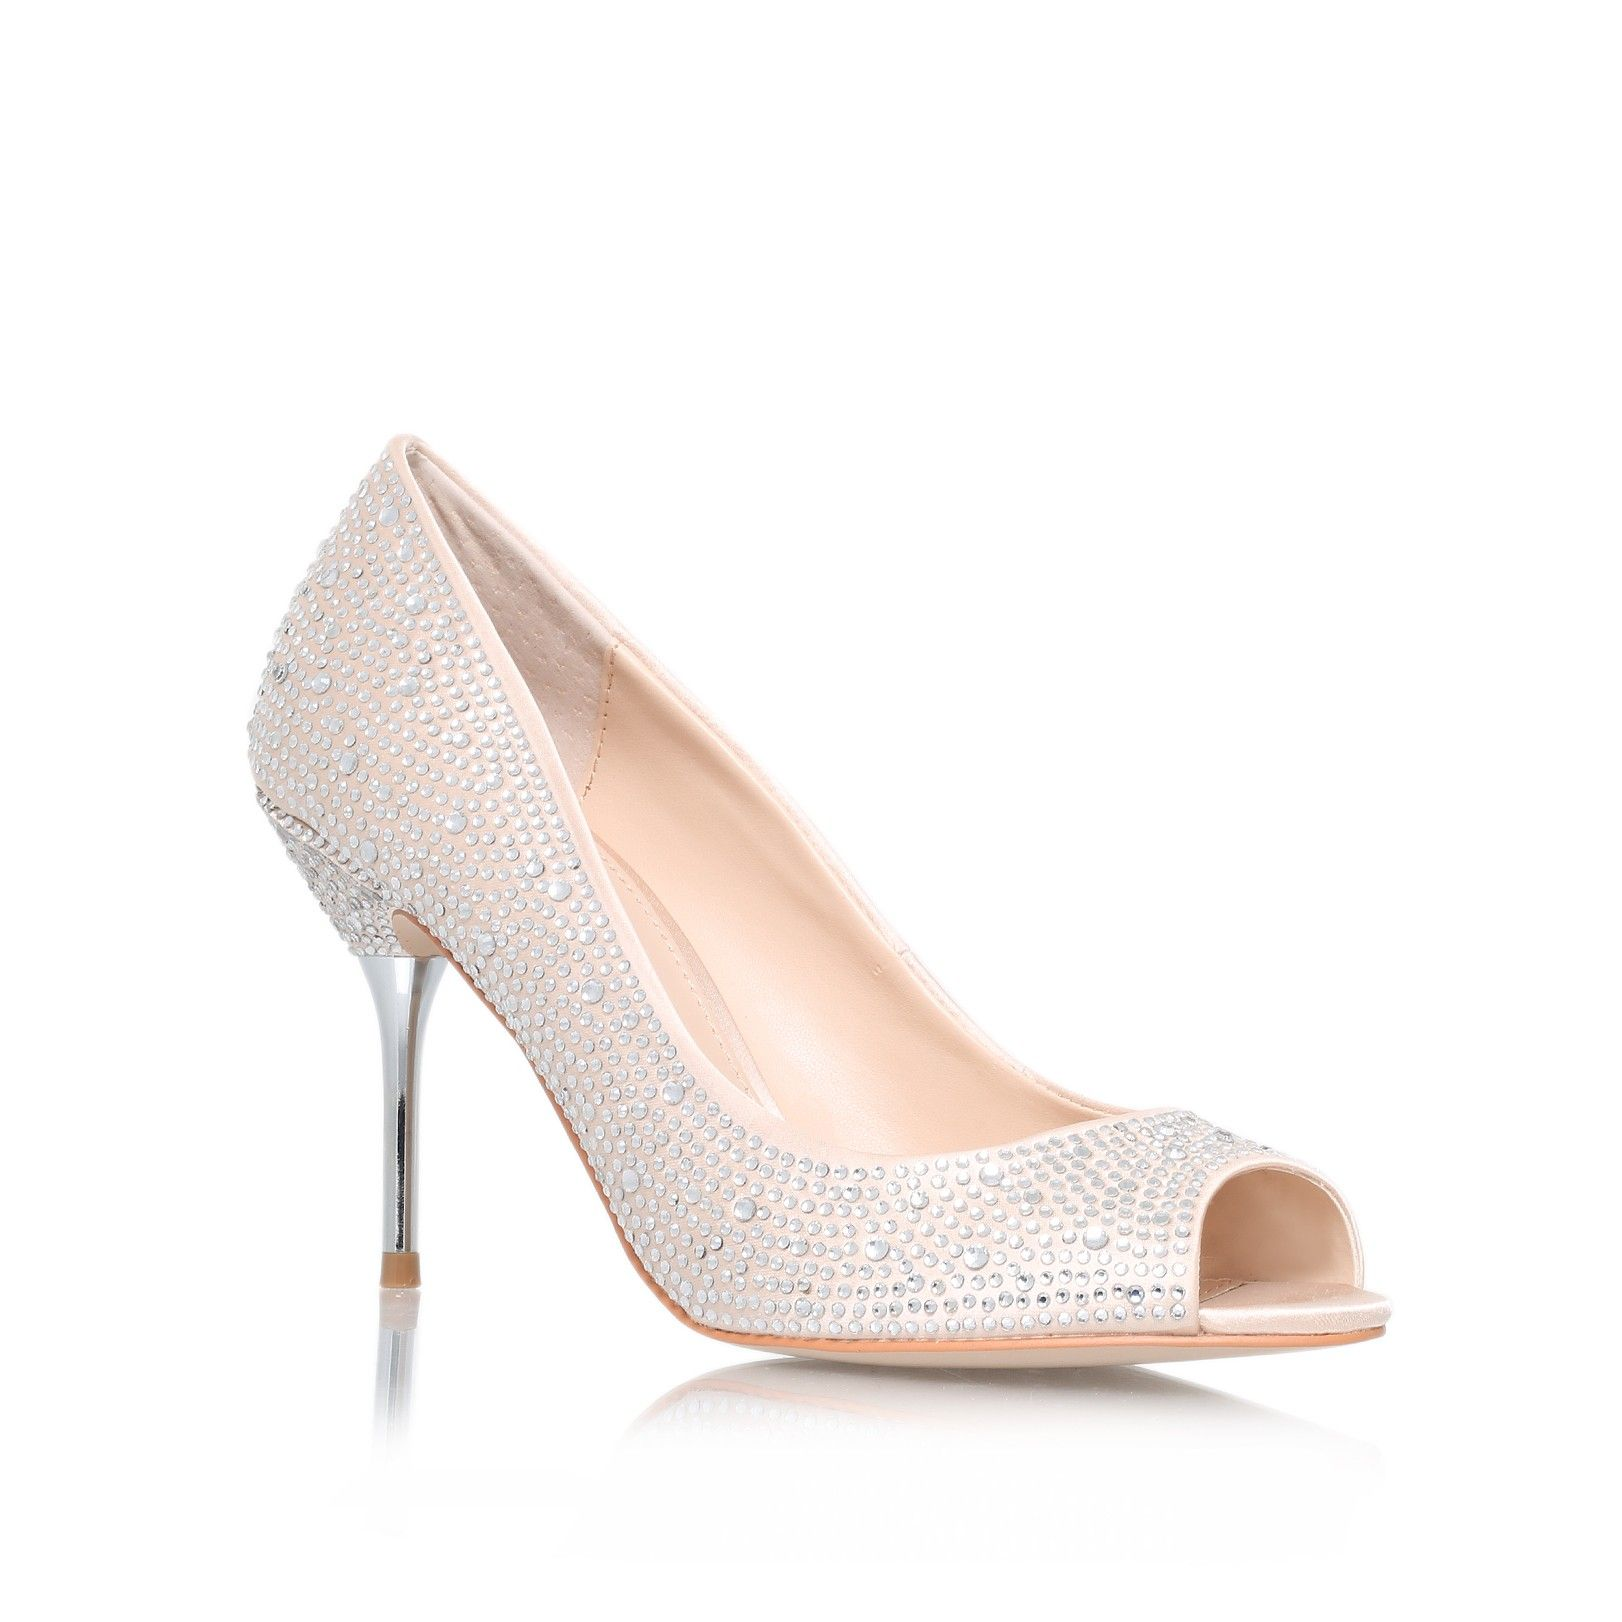 Grid Cream Shoe By Carvela Kurt Geiger Bridal Wedding Collection Shoes